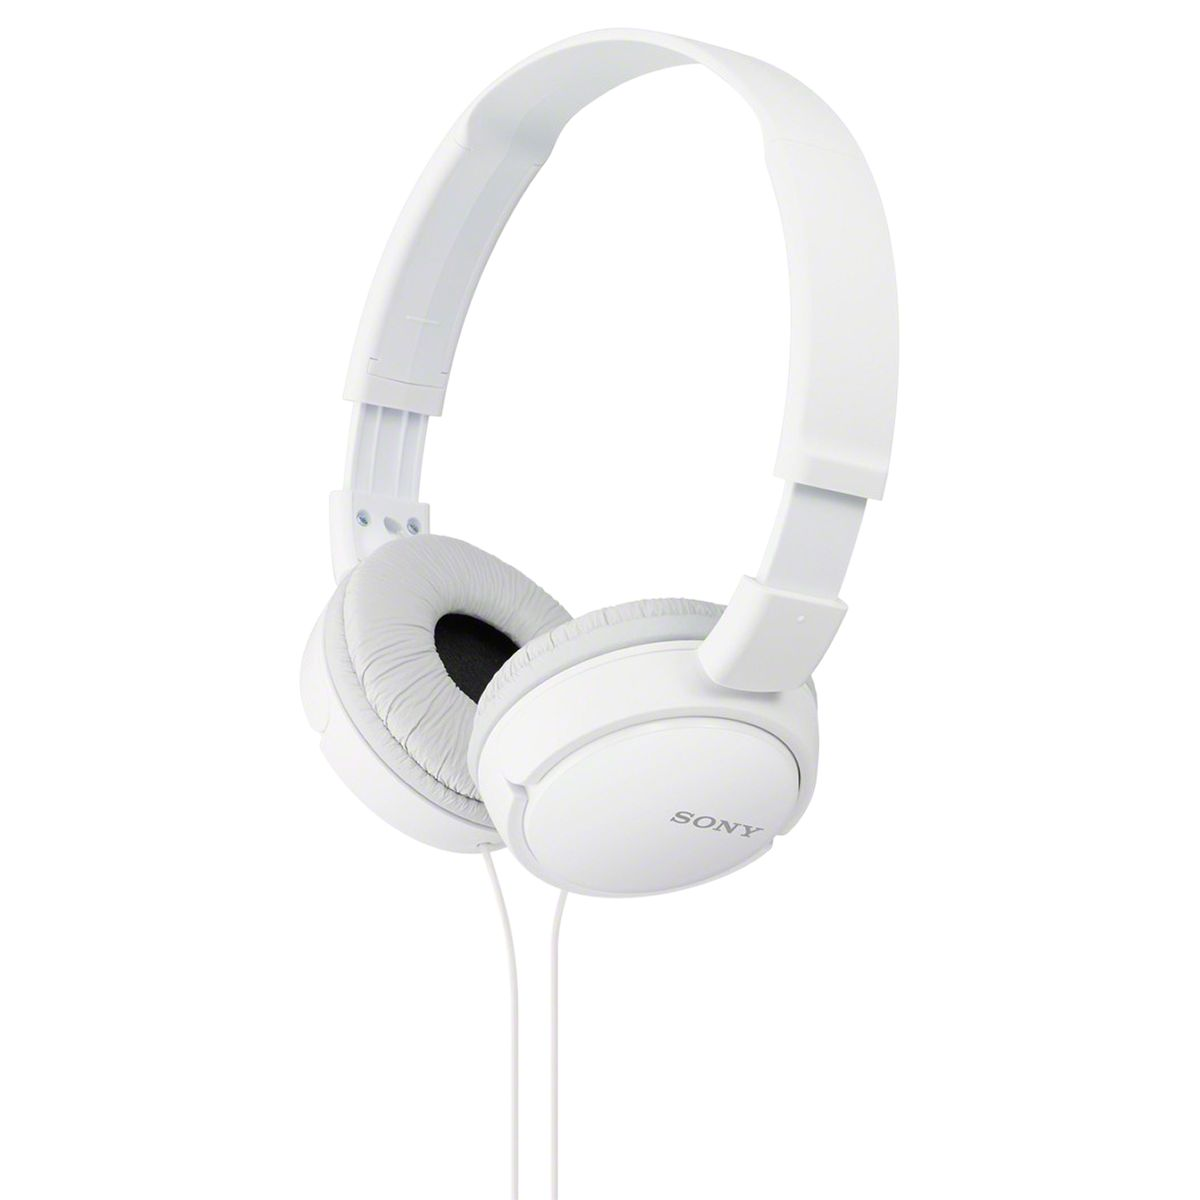 Sony Sony MDR-ZX110AP On-Ear Headphones with Mic/Remote